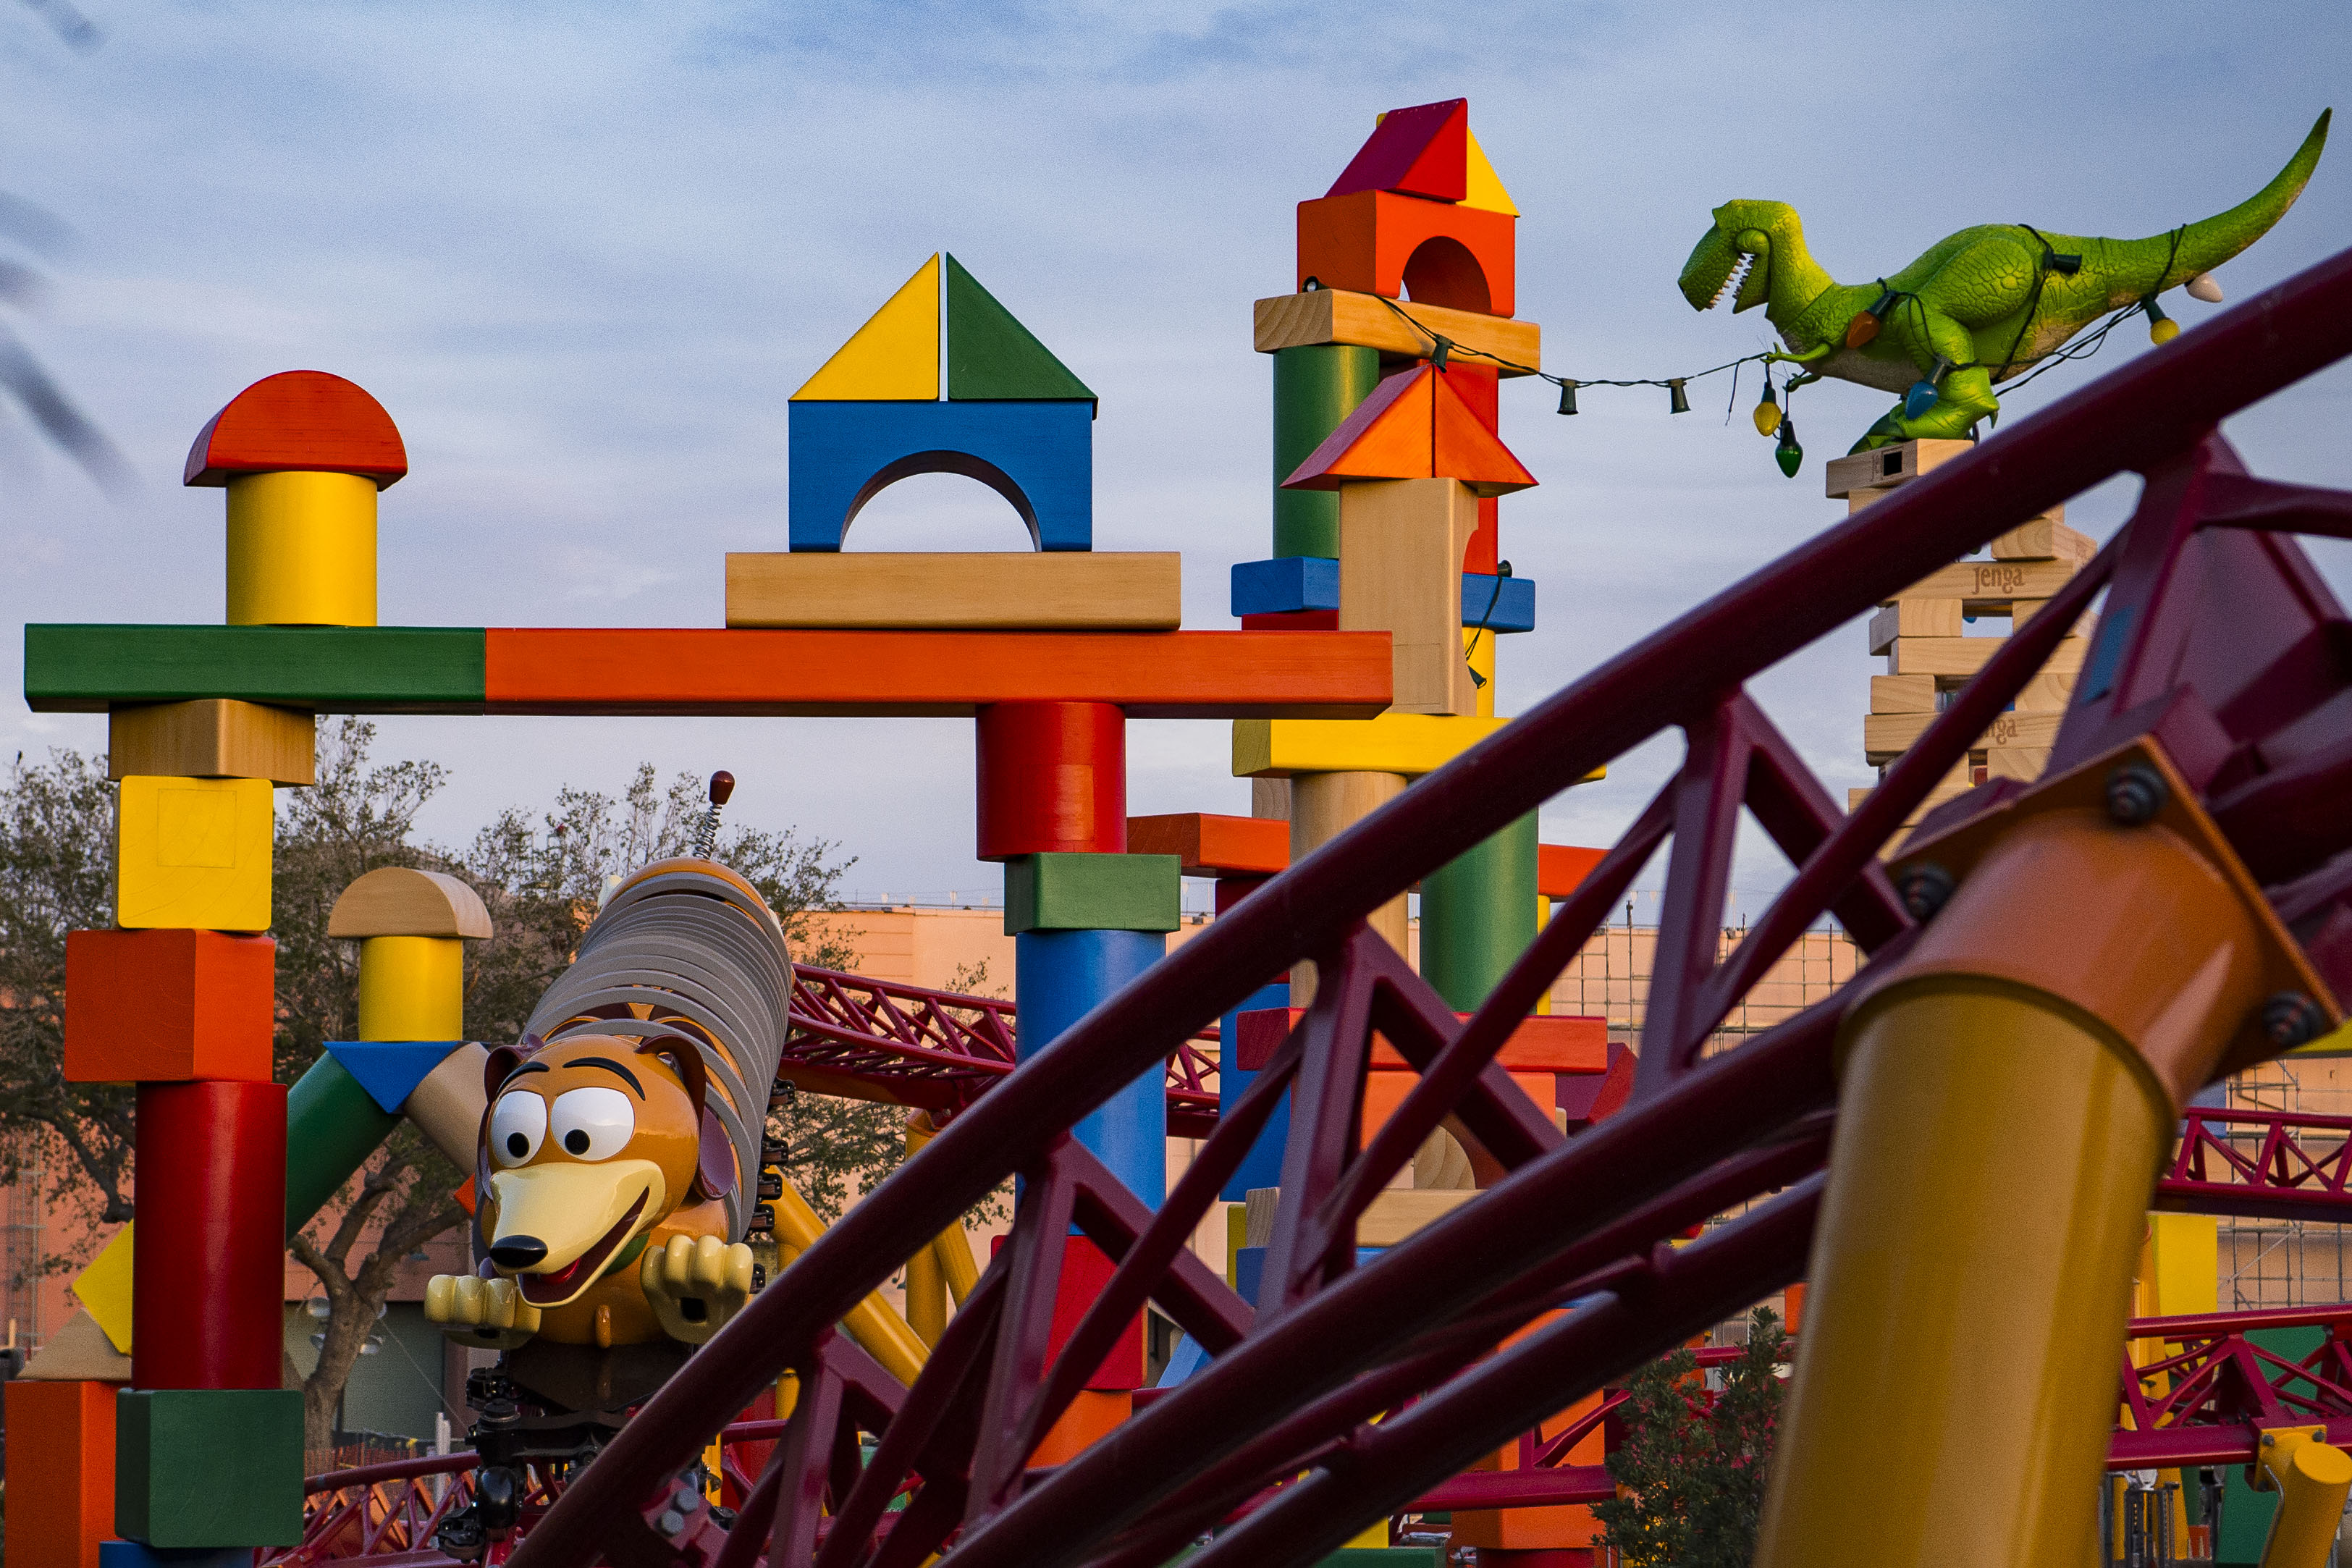 Slide 4 of 15: TOY STORY LAND AT WALT DISNEY WORLD RESORT (LAKE BUENA VISTA, Fla.) ÑToy Story Land at Walt Disney World Resort in Florida opens June 30, 2018. Located at DisneyÕs Hollywood Studios, the new 11-acre Land will make guests feel like they have shrunk to the size of a toy in the setting of AndyÕs backyard. Guests will whoosh along on a family-friendly roller coaster, Slinky Dog Dash (pictured under development), take a spin aboard Alien Swirling Saucers and score high on the midway at Toy Story Mania! (Matt Stroshane, photographer)